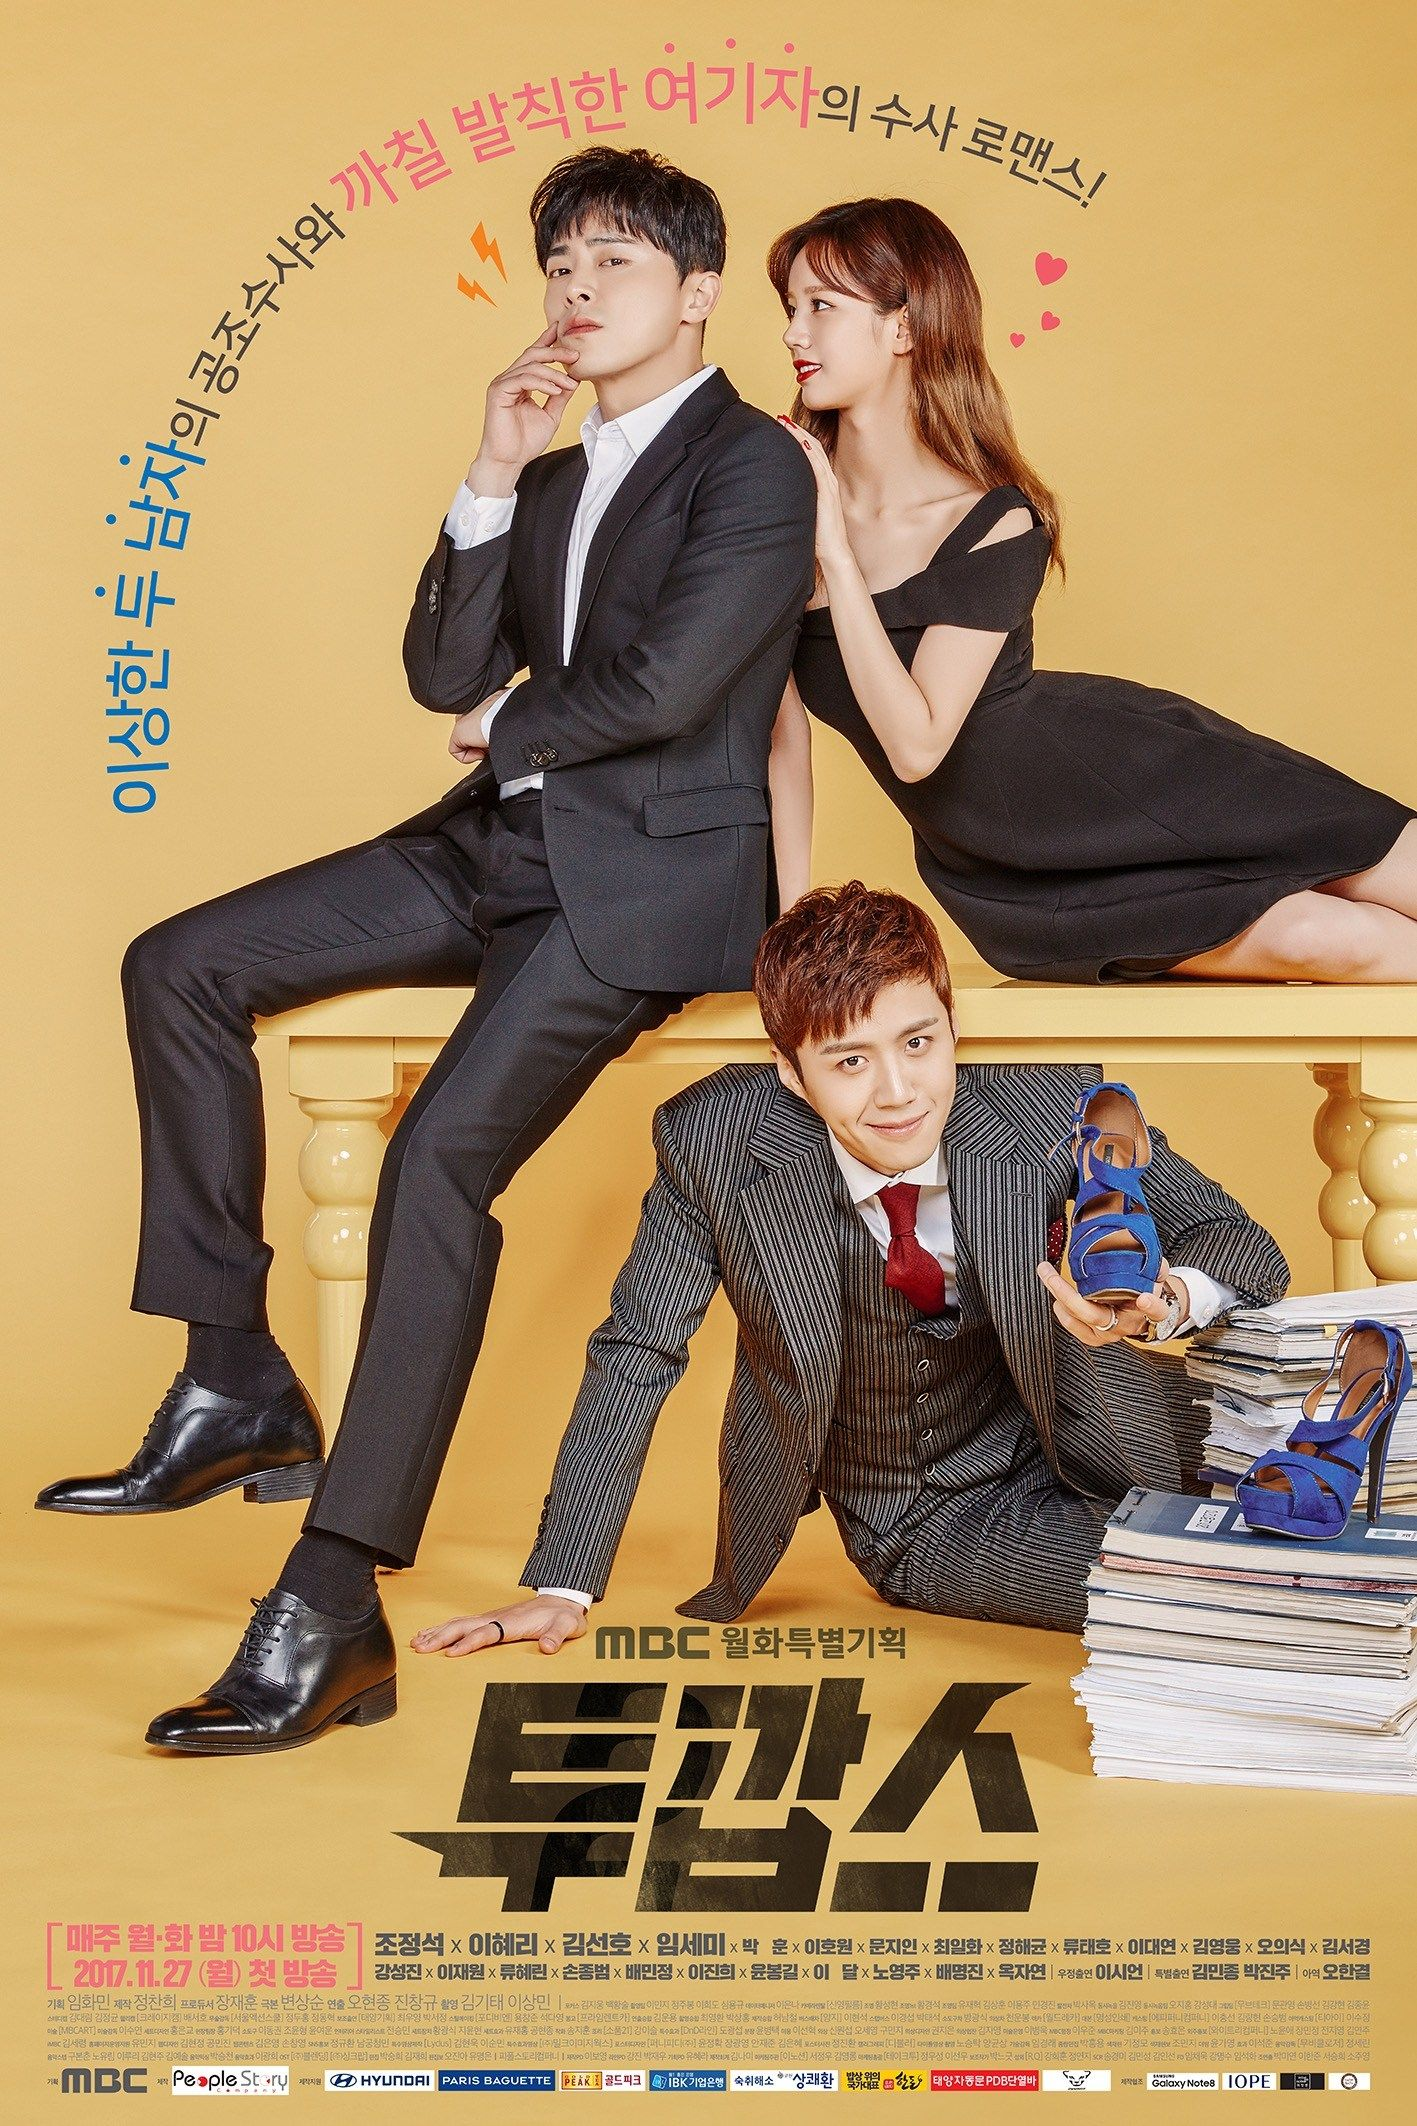 subtitles for korean movies free download in english